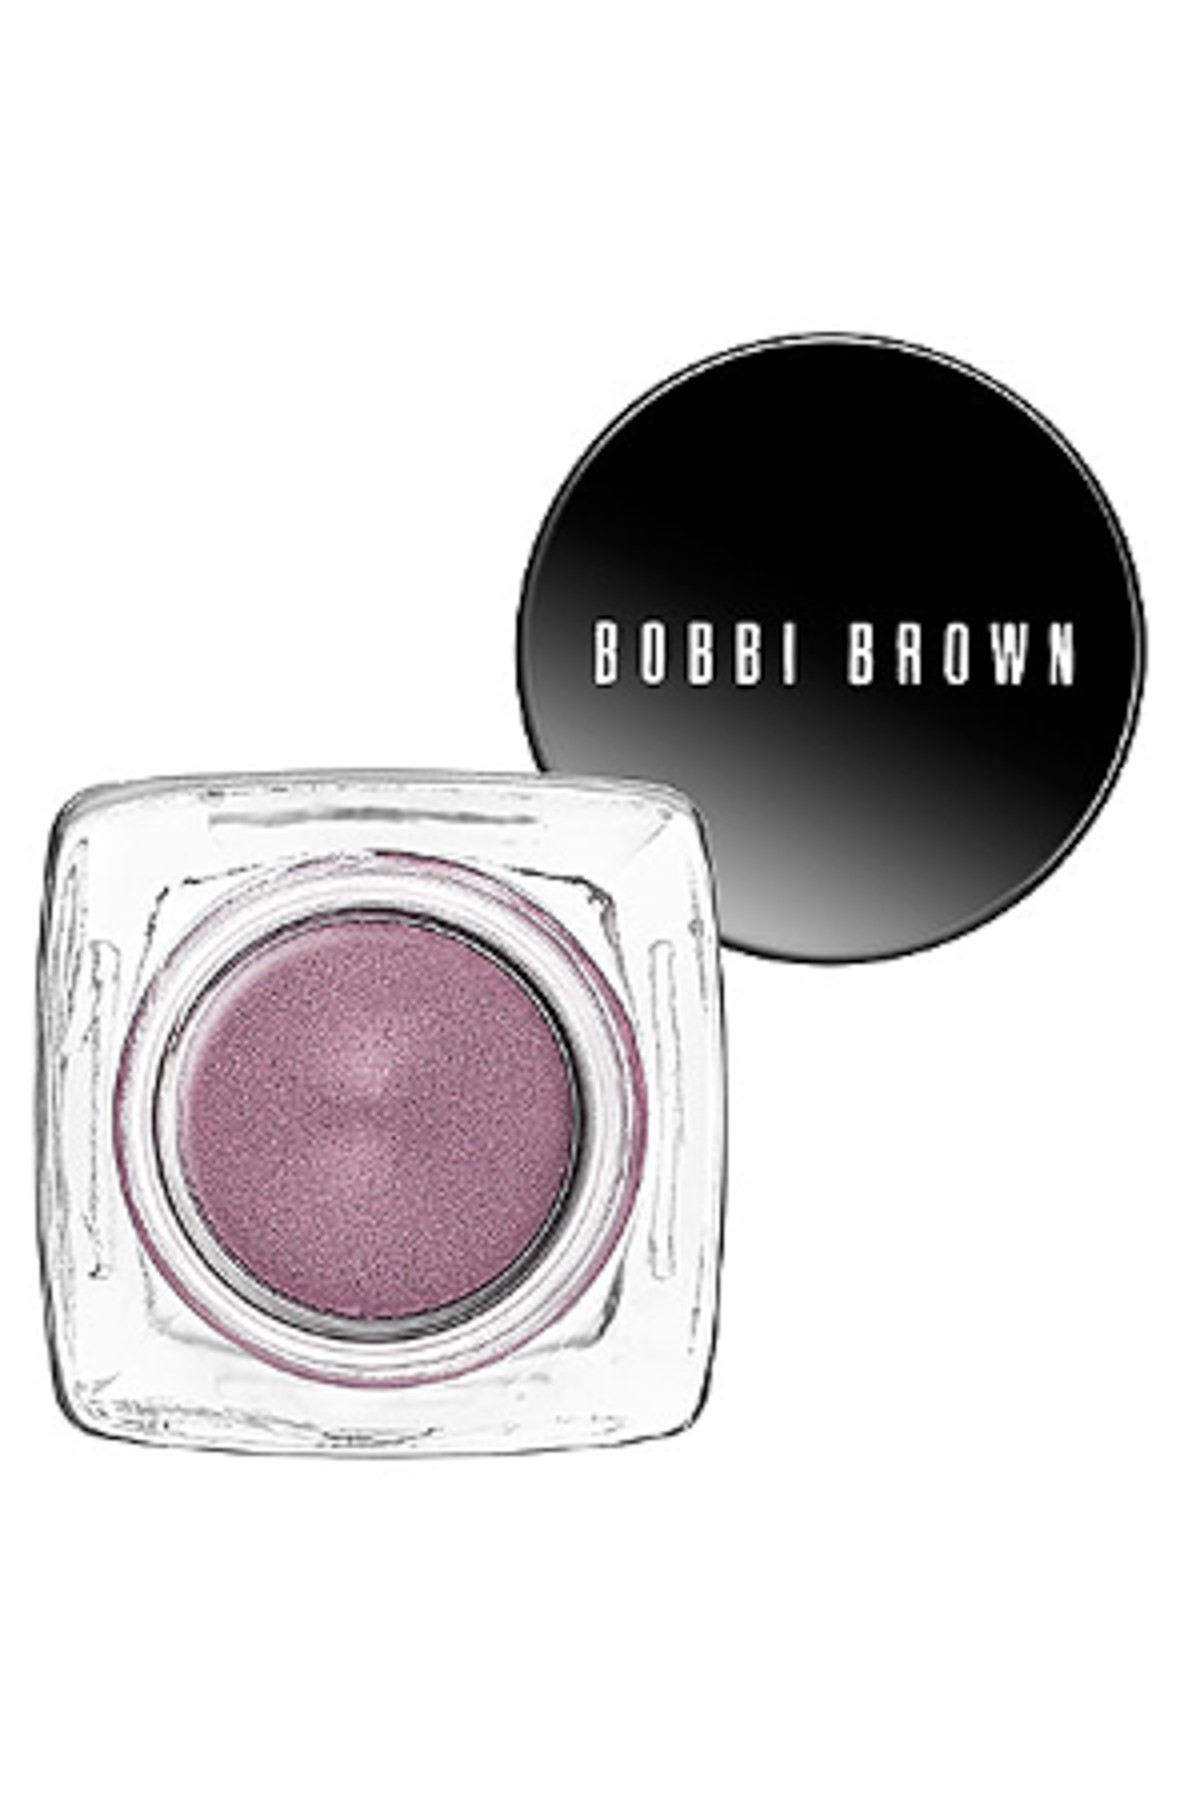 Bobbı Brown Kremsi Göz Farı – Lon Wear Eye Shadow Lilac 3,5 Gr 716170098968 – 102.21 TL